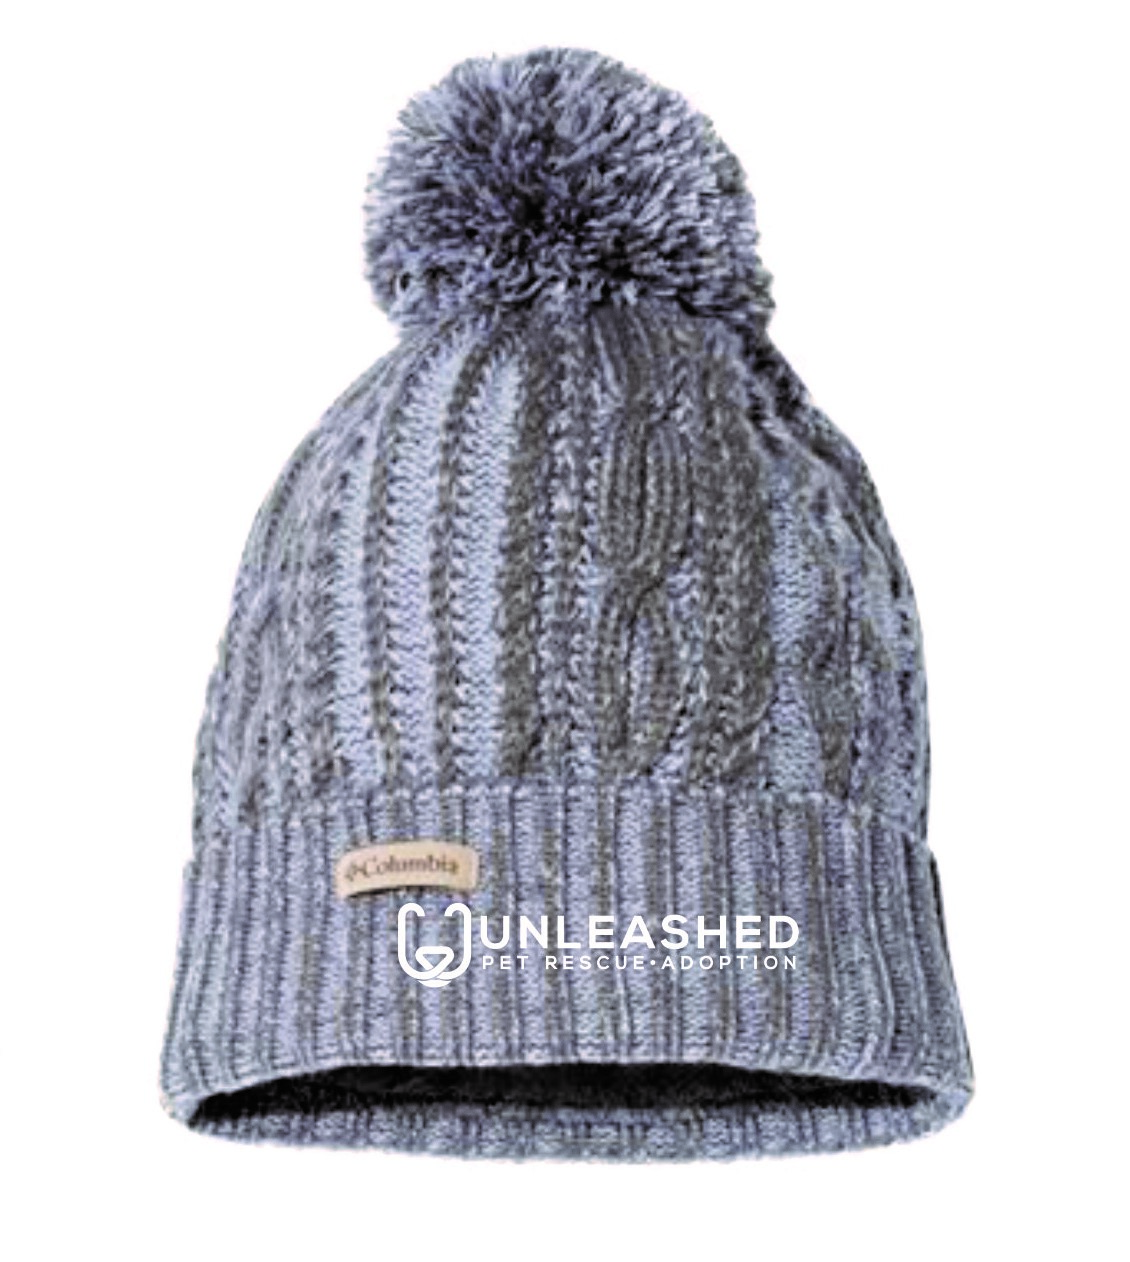 Unleashed Columbia Women s Stocking Cap — Unleashed Pet Rescue ... 6c9697581a3